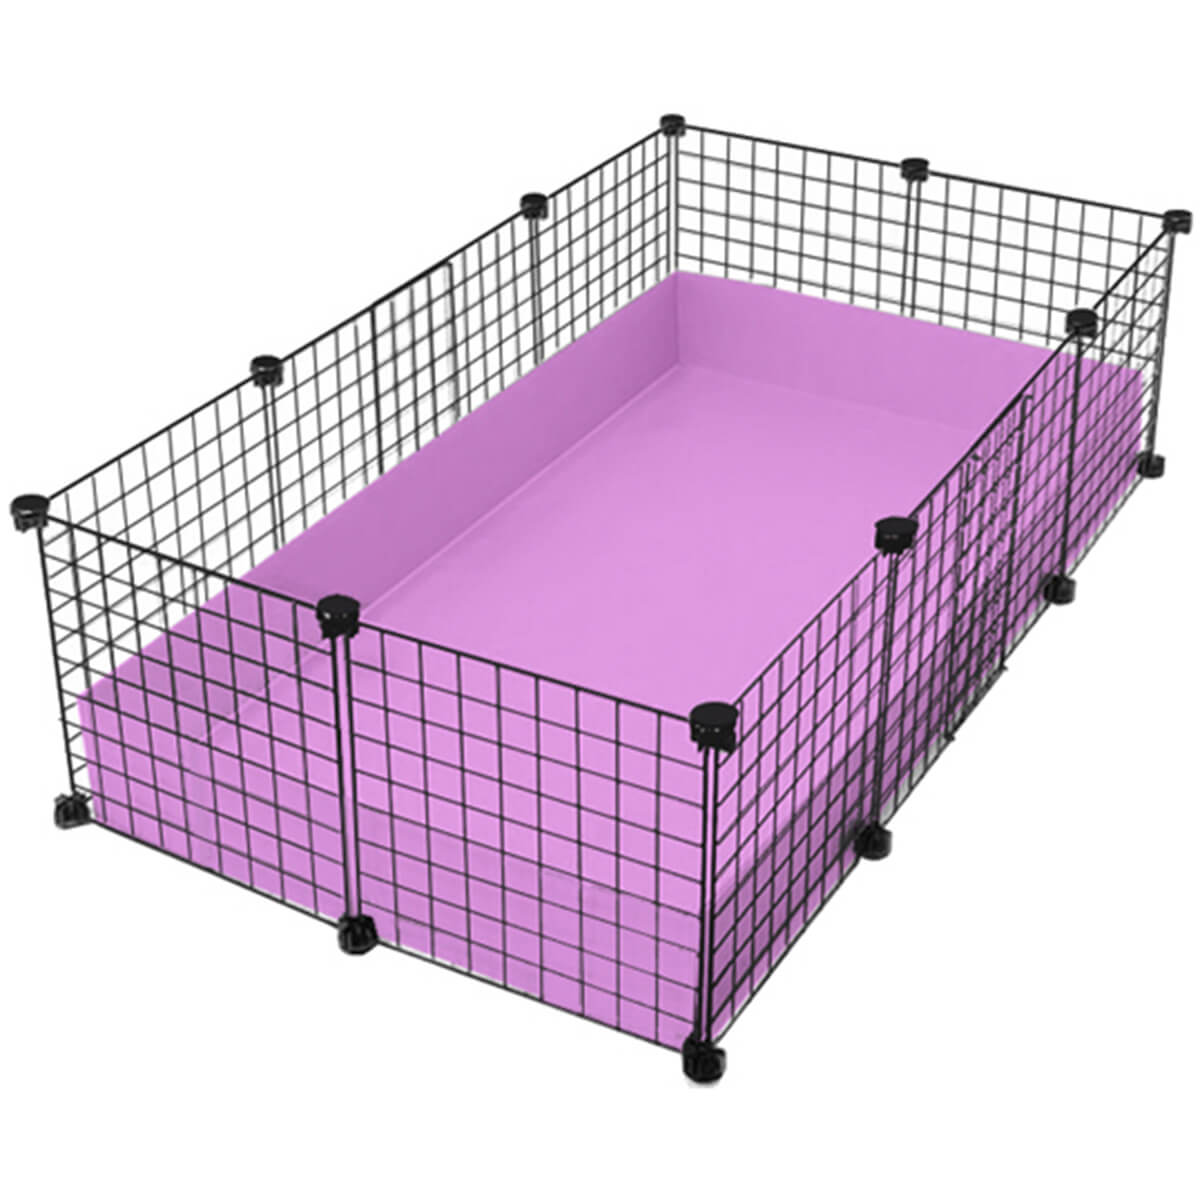 Medium 2x3 5 grids cage standard cages cagetopia for Small guinea pig cages for sale